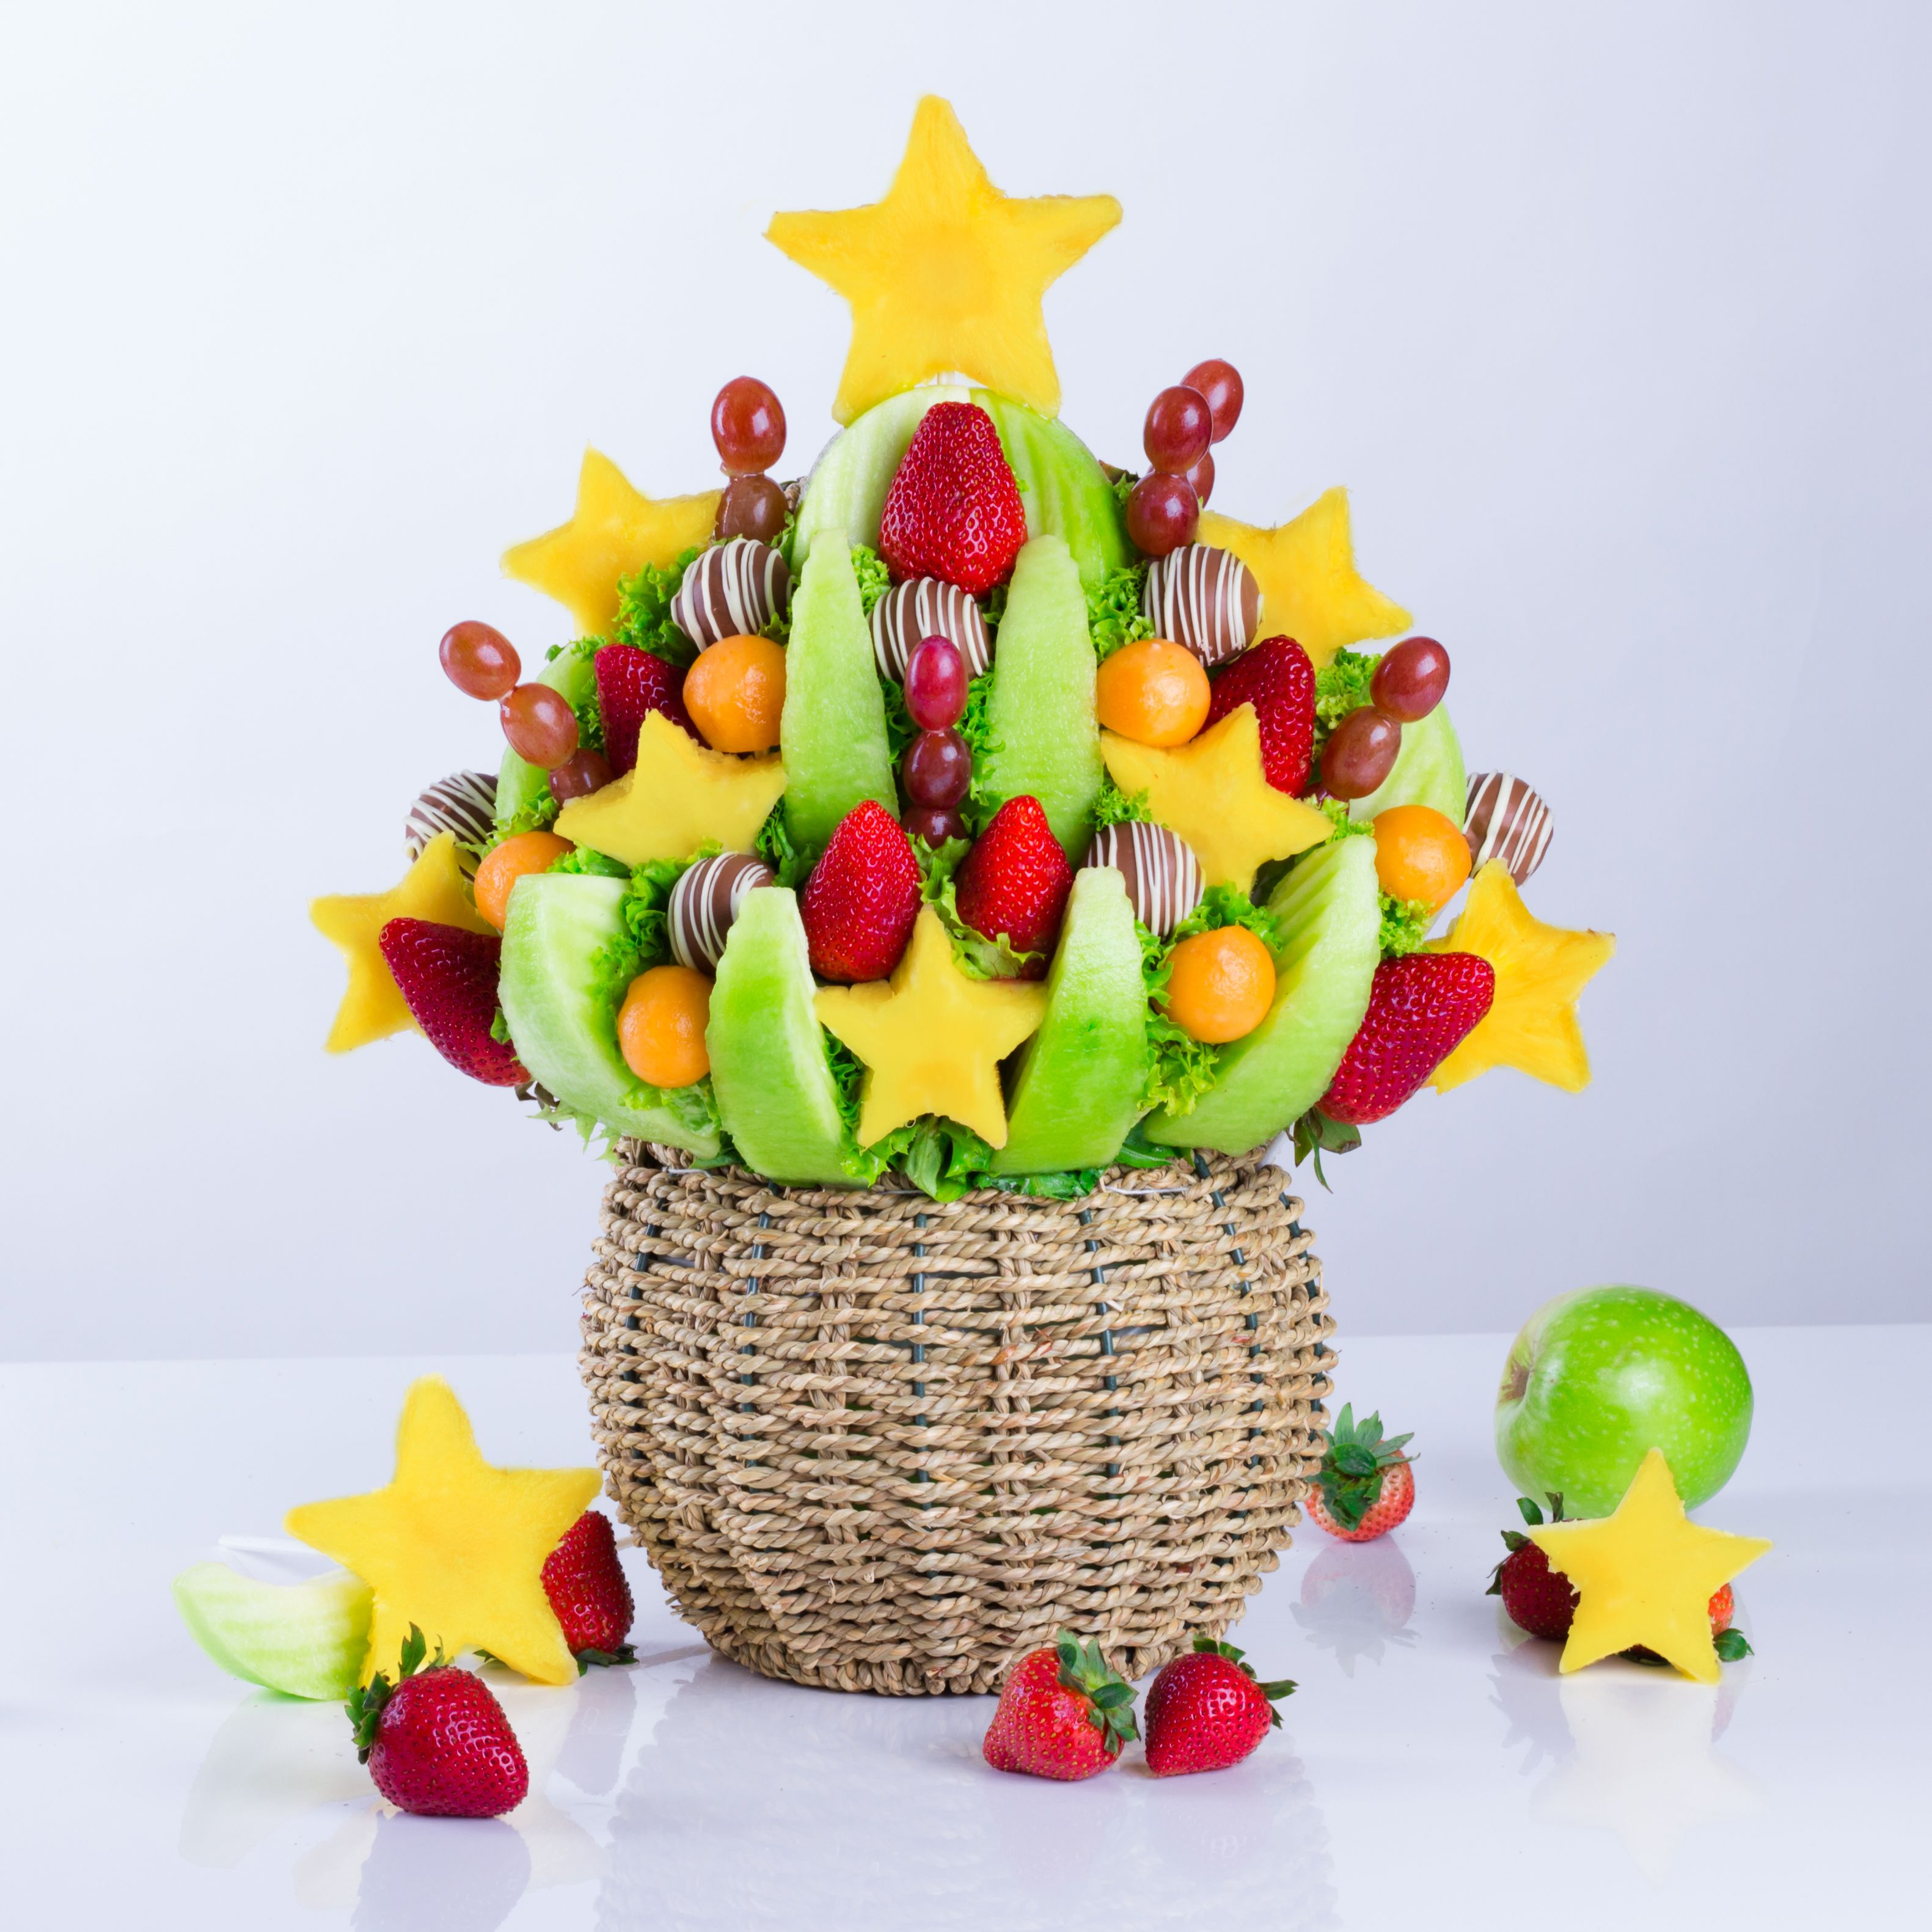 Pin On Fruit Art Collection